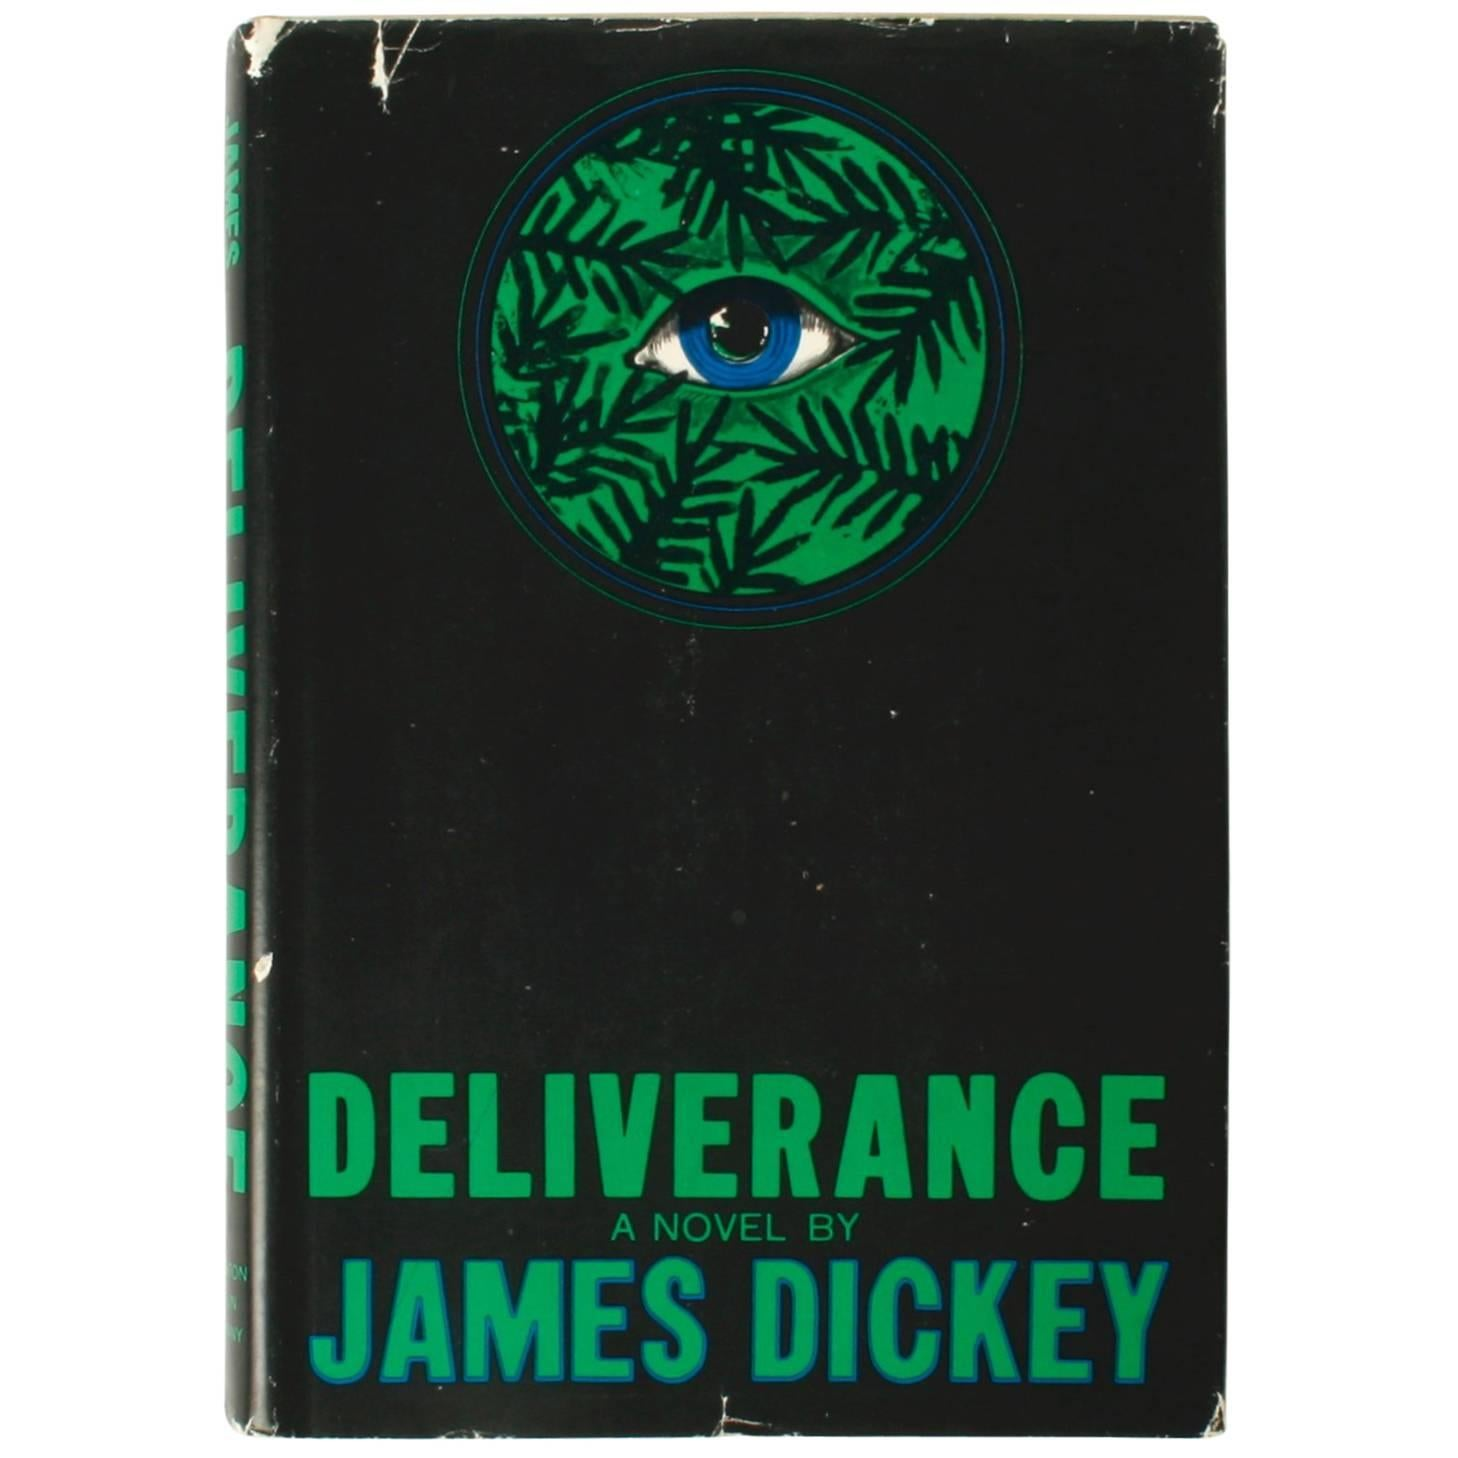 Deliverance by James Dickey, First Edition